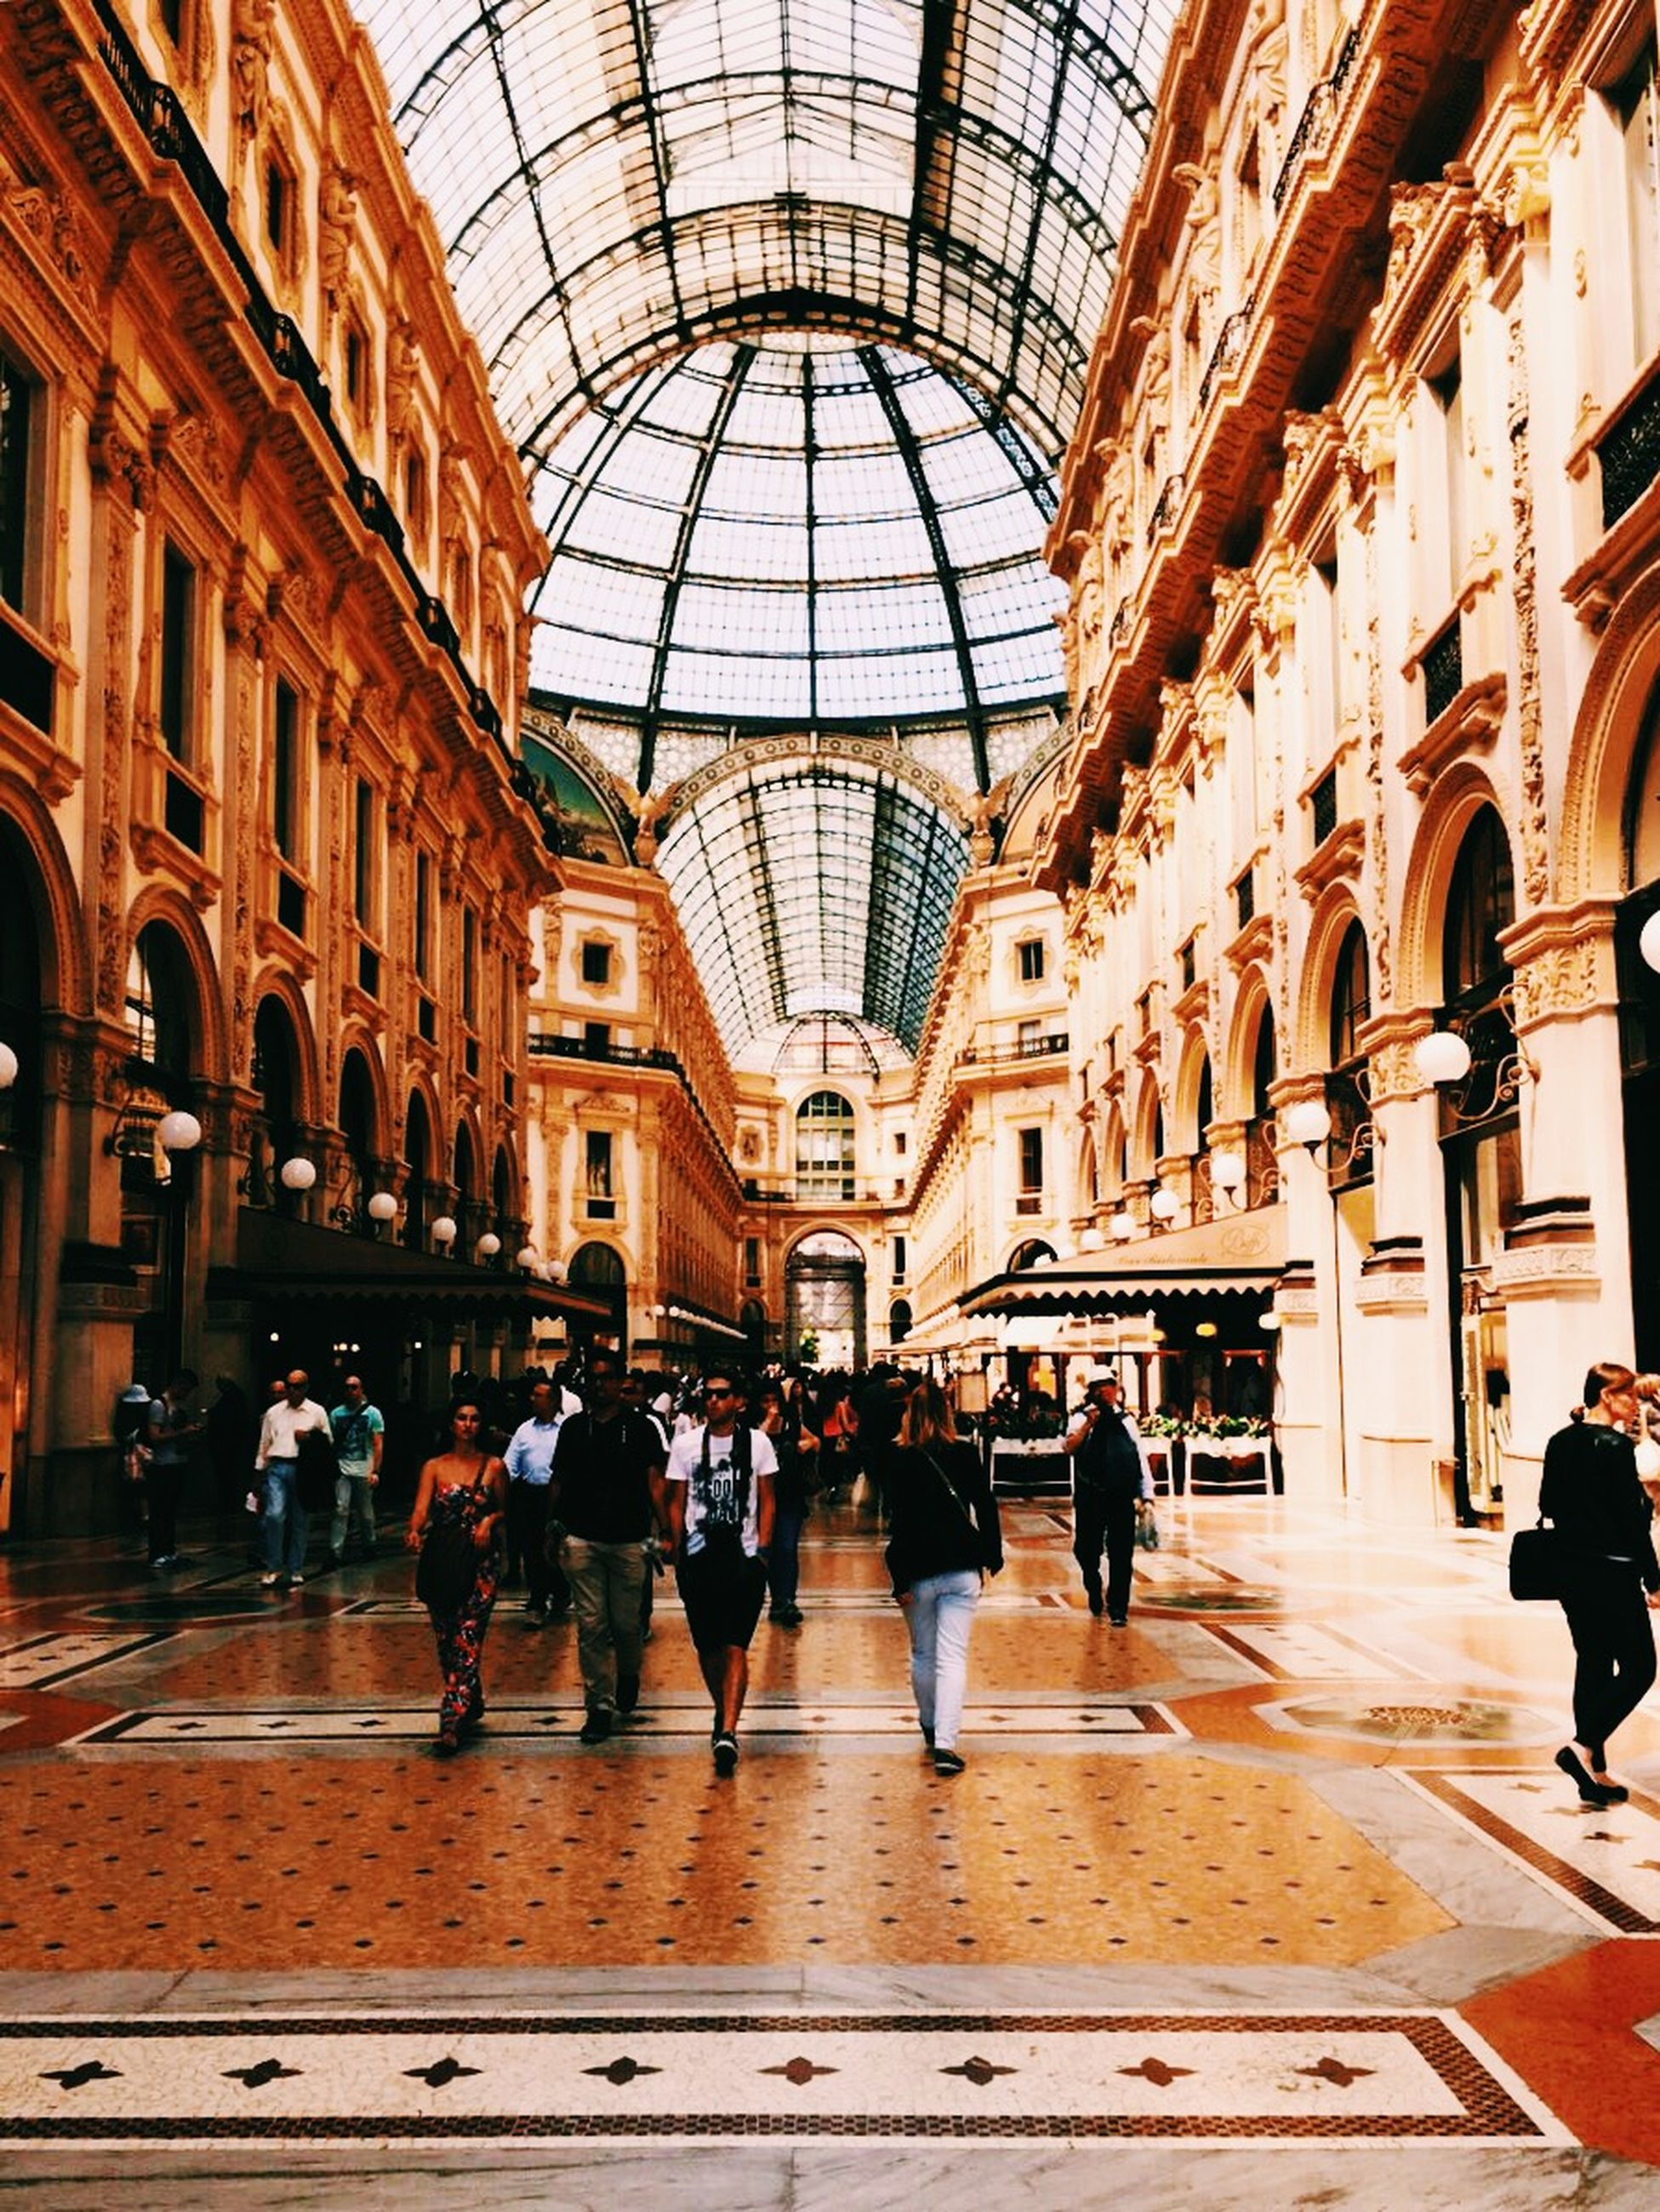 indoors, architecture, built structure, men, large group of people, person, ceiling, walking, lifestyles, arch, leisure activity, city life, railroad station, travel, shopping mall, flooring, window, group of people, full length